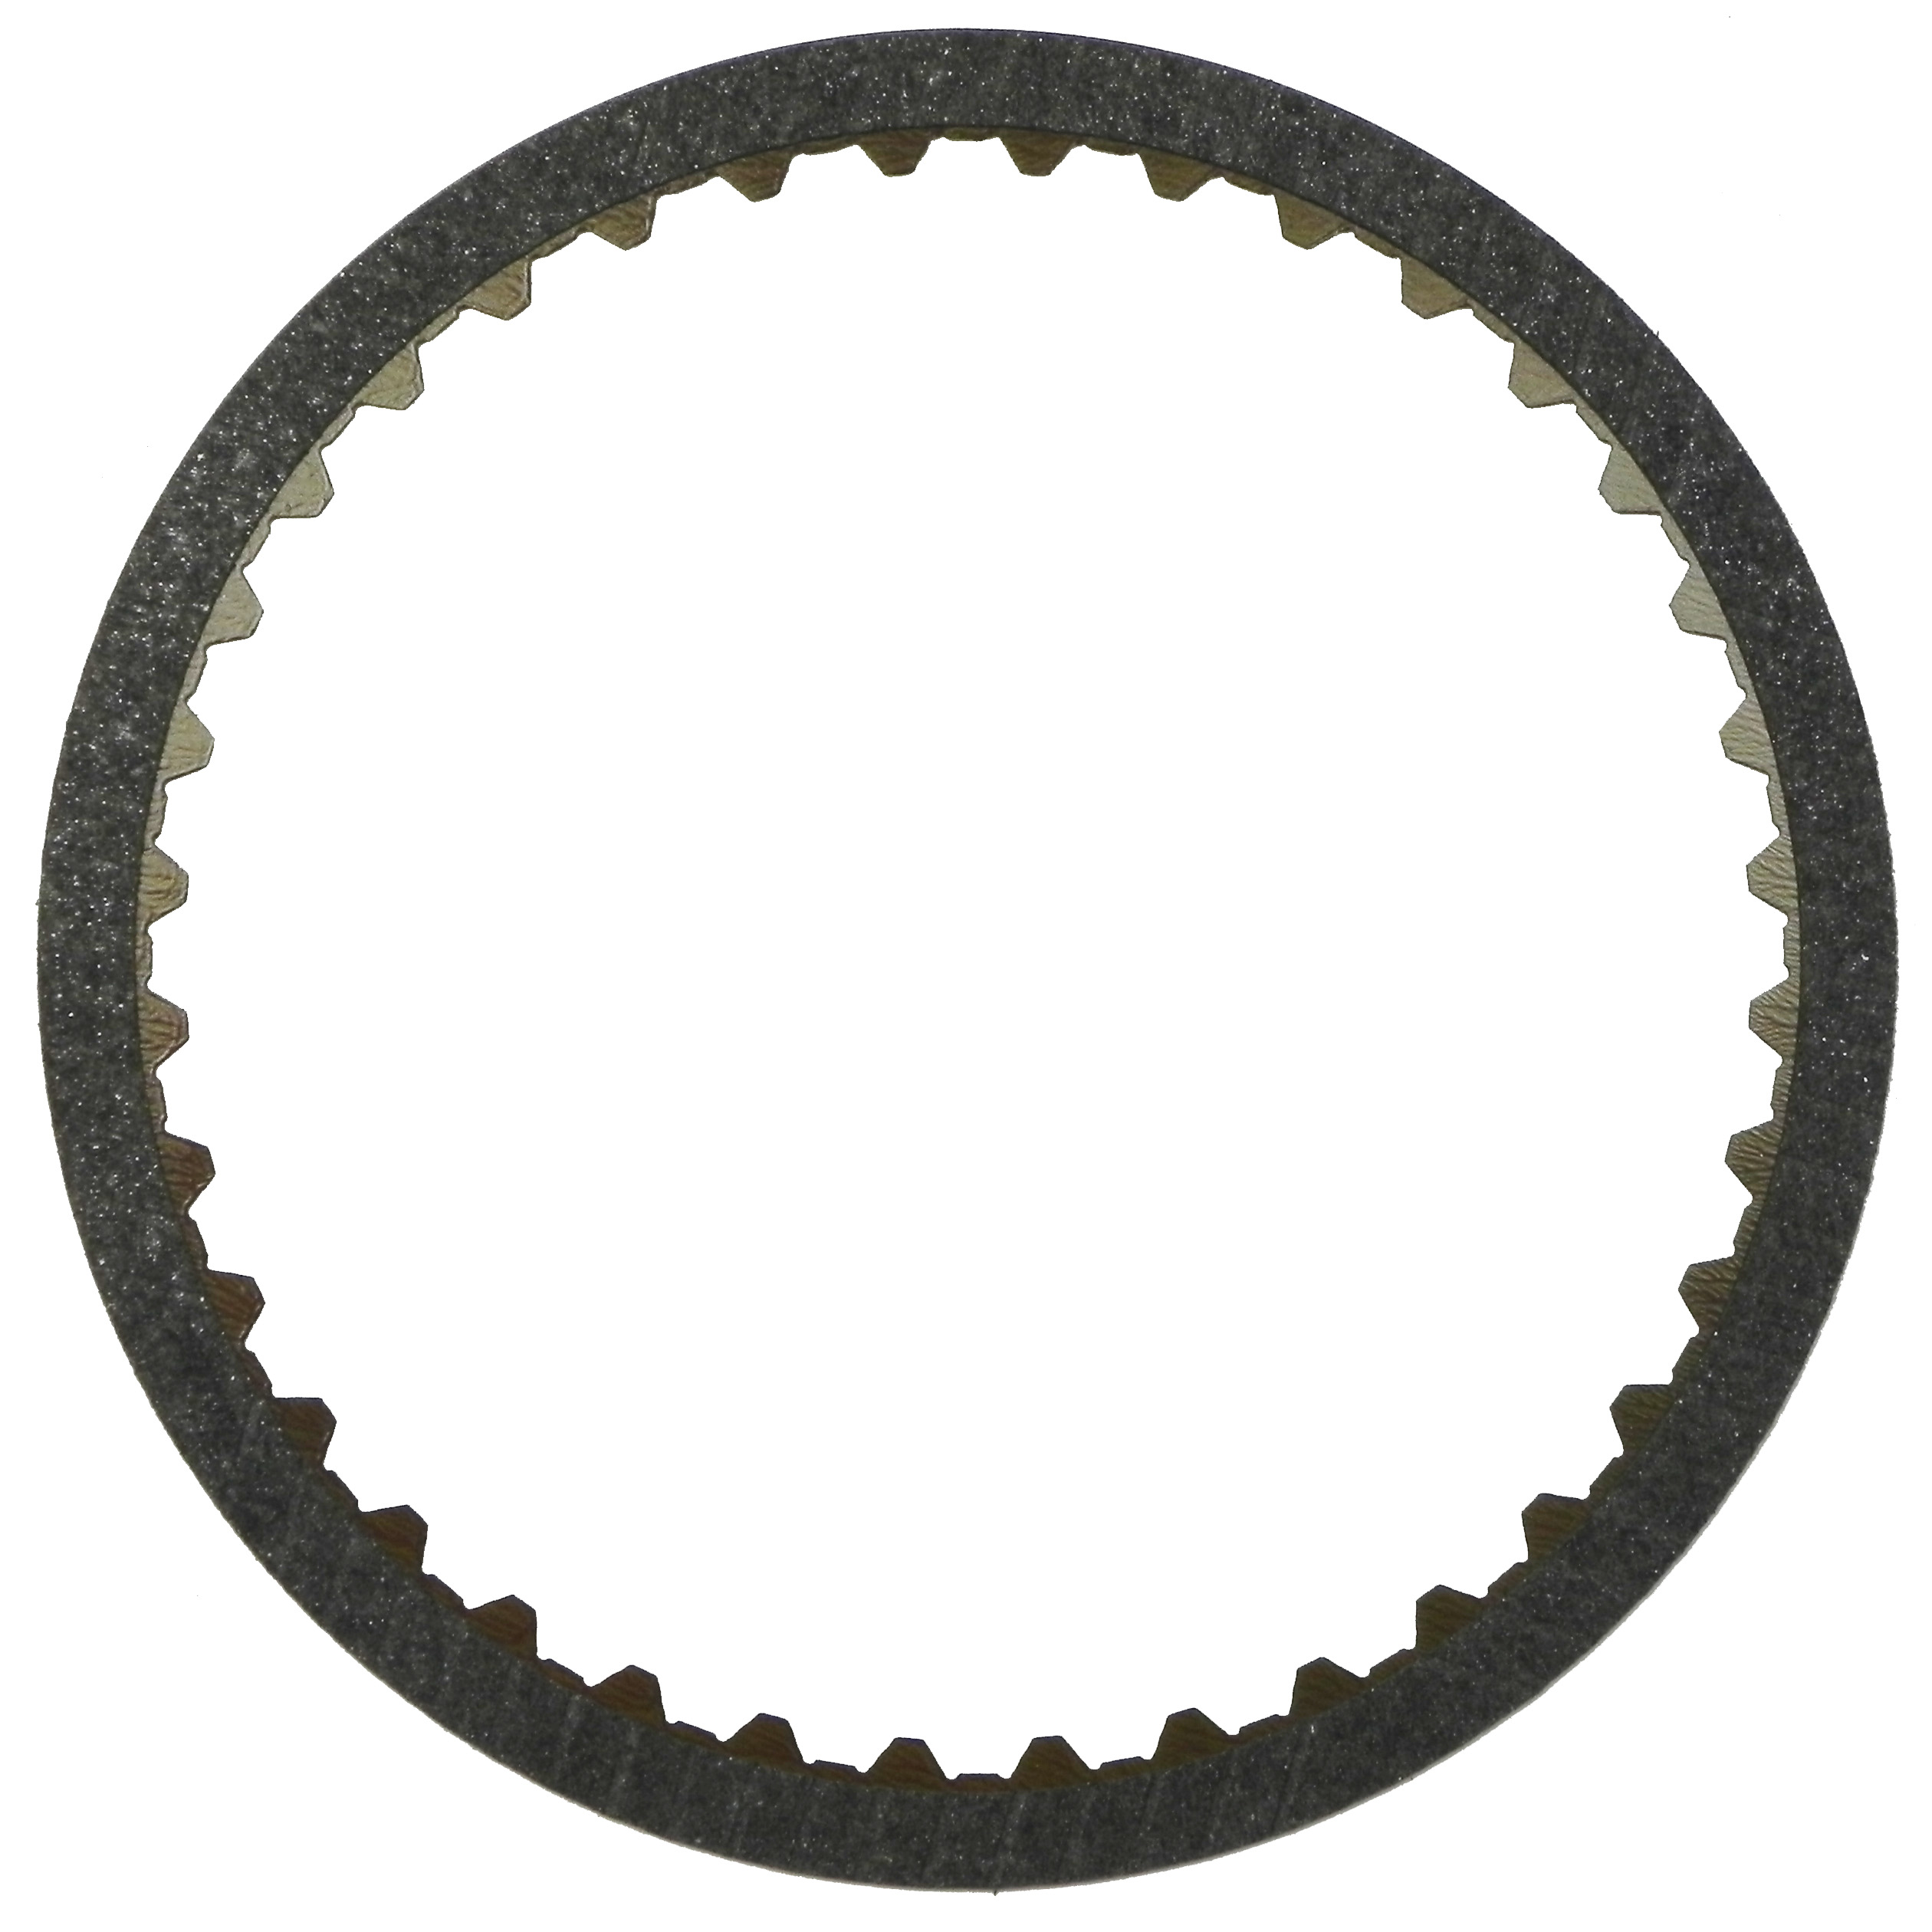 R572615 | 1996-2006 Friction Clutch Plate High Energy K2 Clutch (Large ID) High Energy